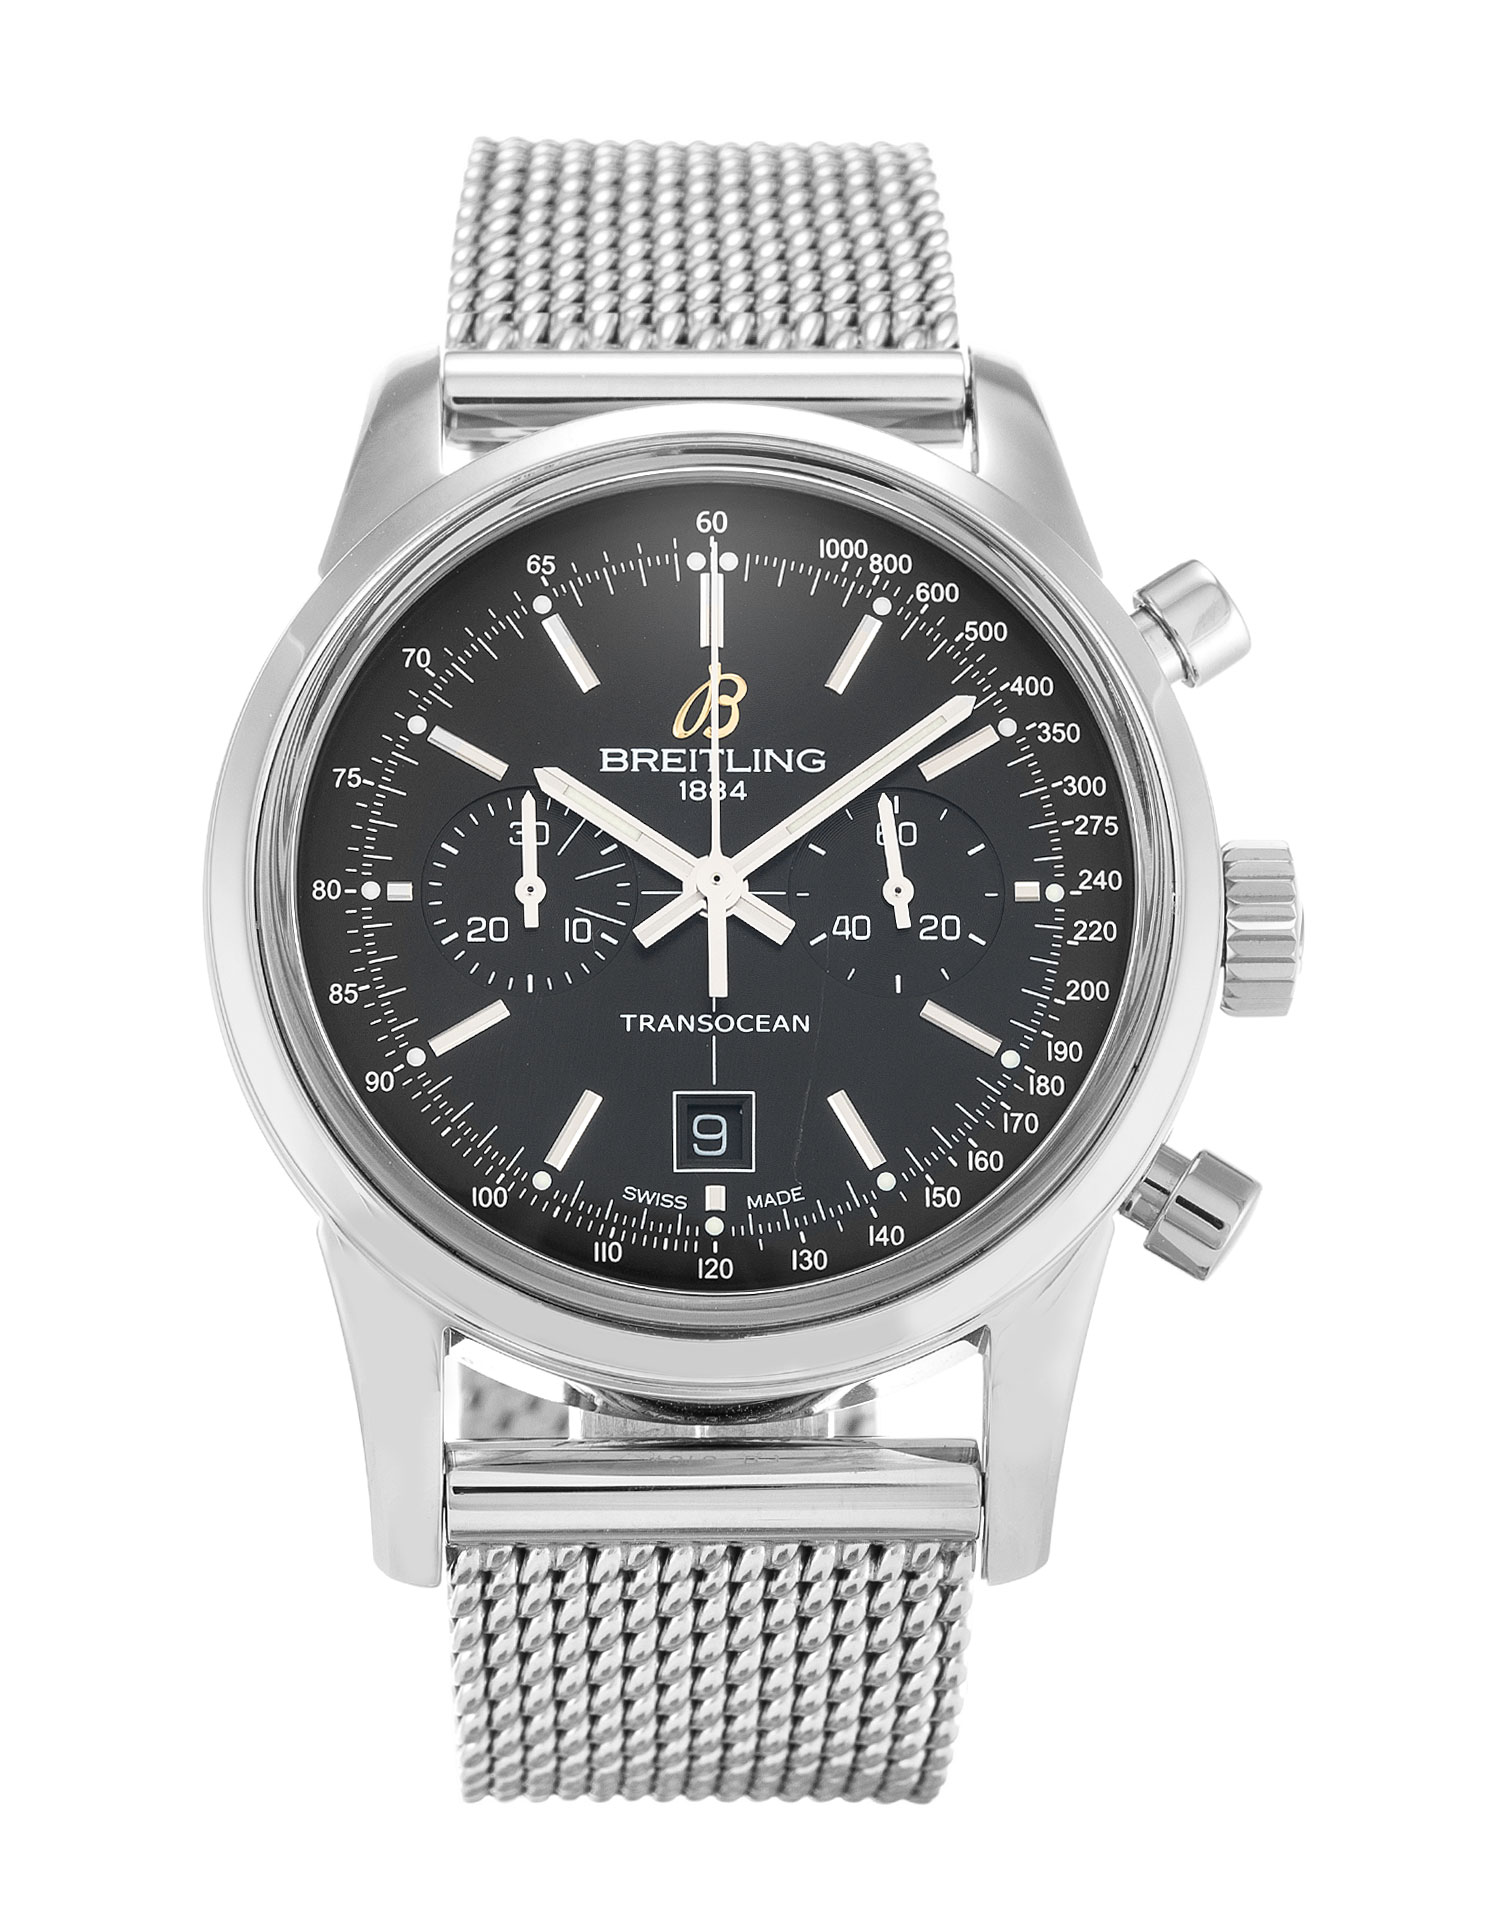 Breitling Transocean Chronograph A41310 Mens 38 Mm Steel Case Quartz Movement – iapac.to